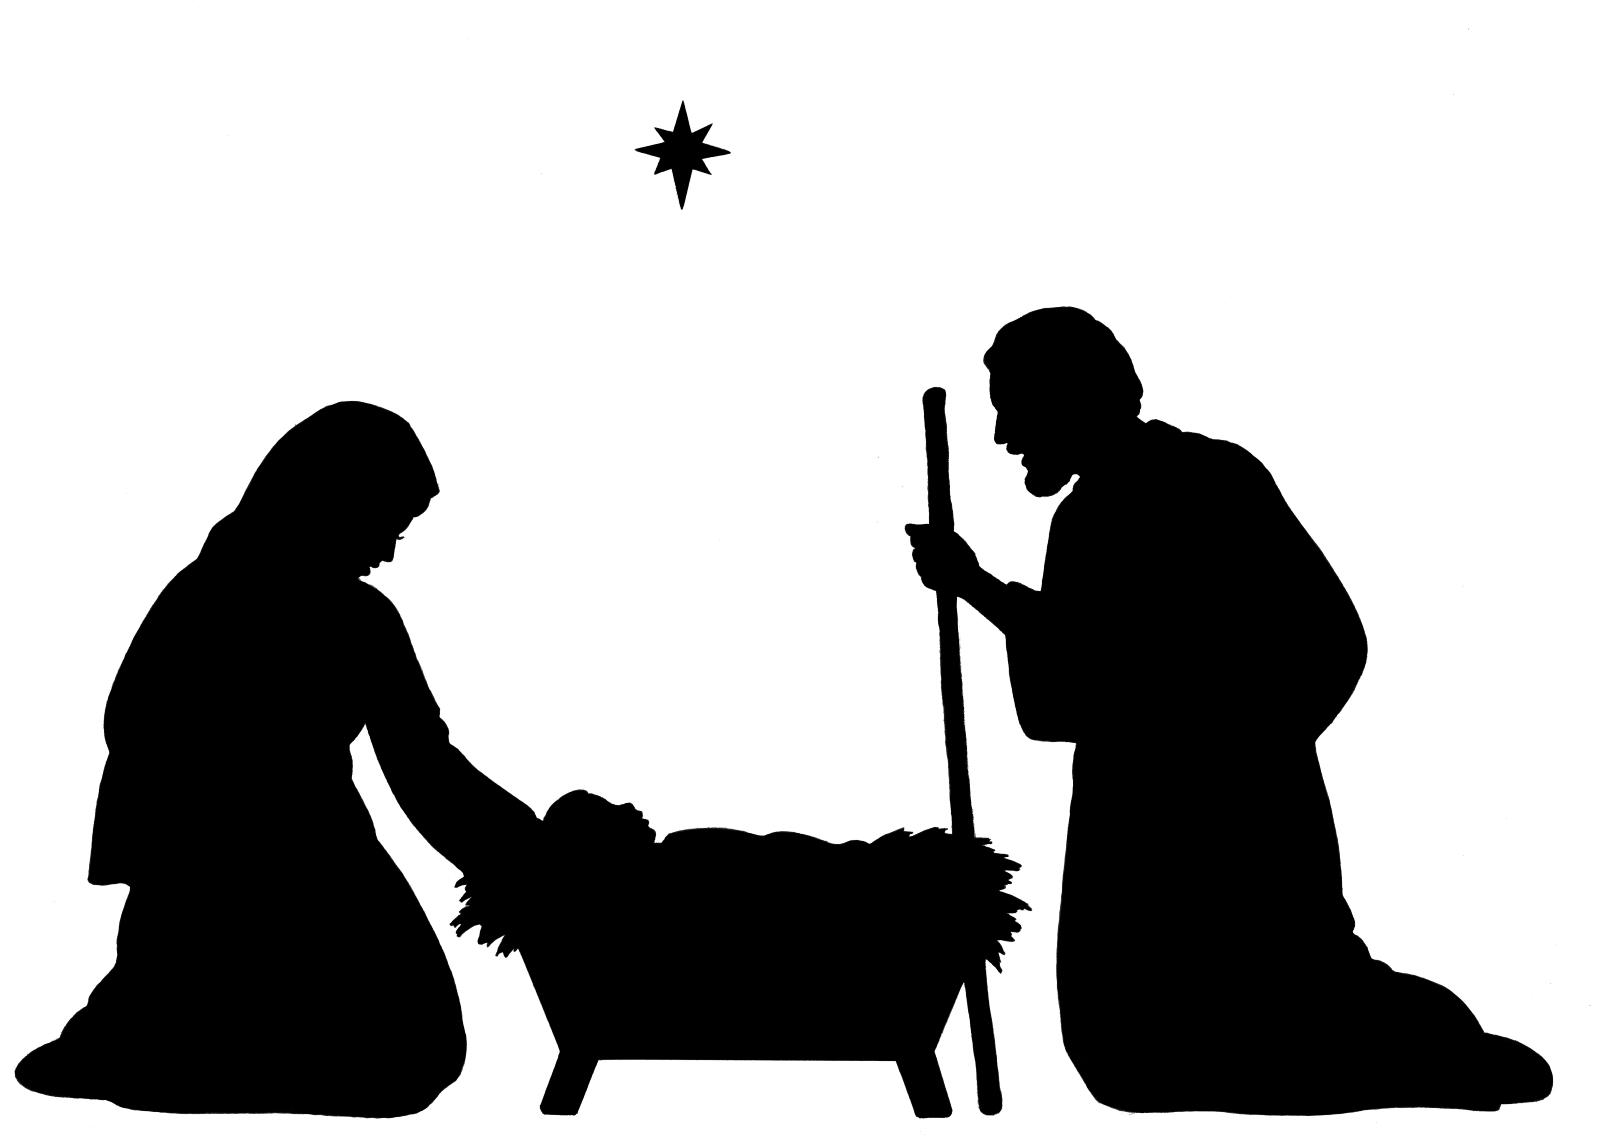 free nativity clipart silhouette free download best free nativity scene clipart for children nativity scene clipart for children